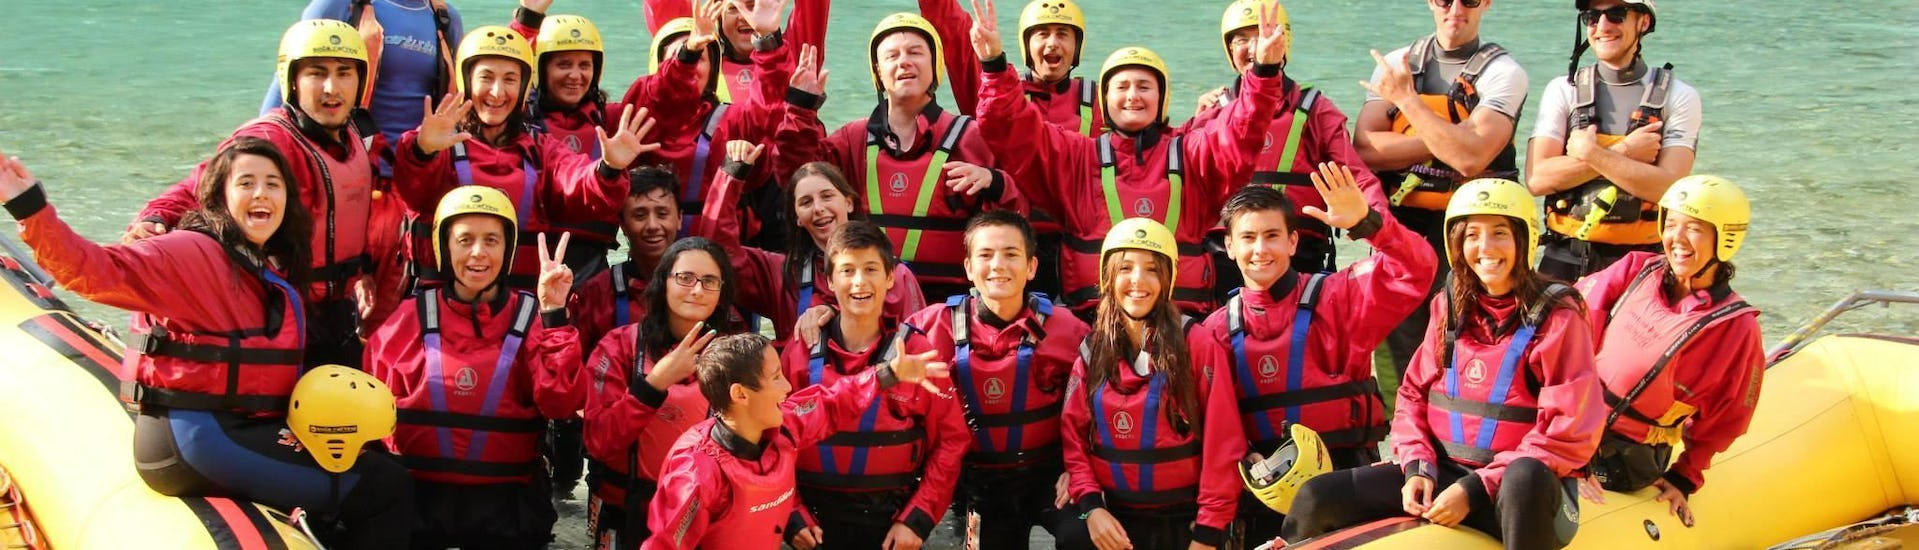 rafting-for-groups-from-10-people-on-the-soca-river-soca-rafting-hero